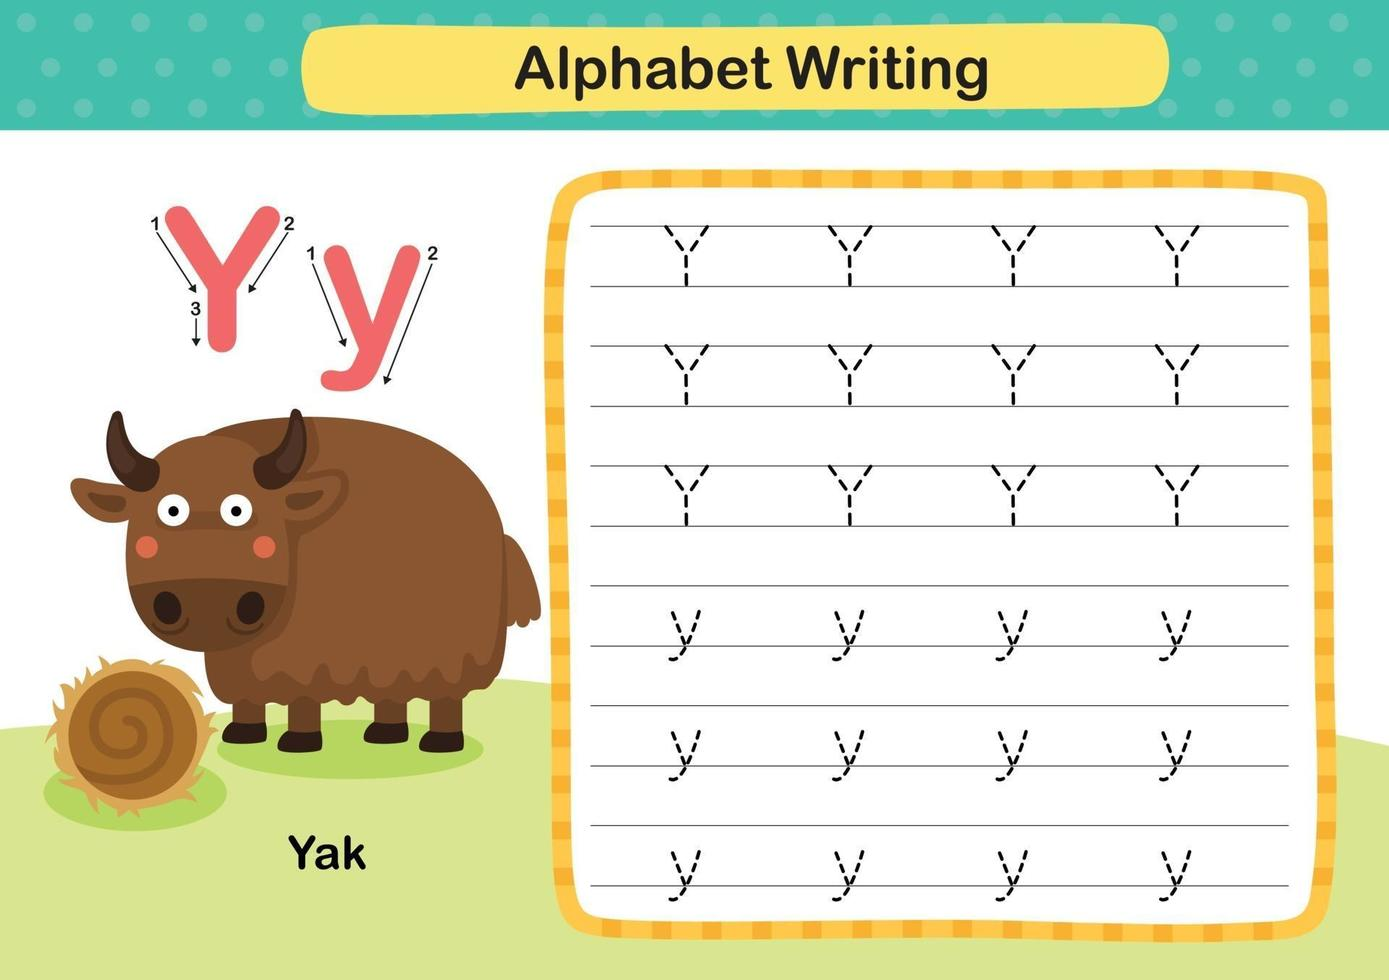 Alphabet Letter Y-Yak exercise with cartoon vocabulary illustration, vector